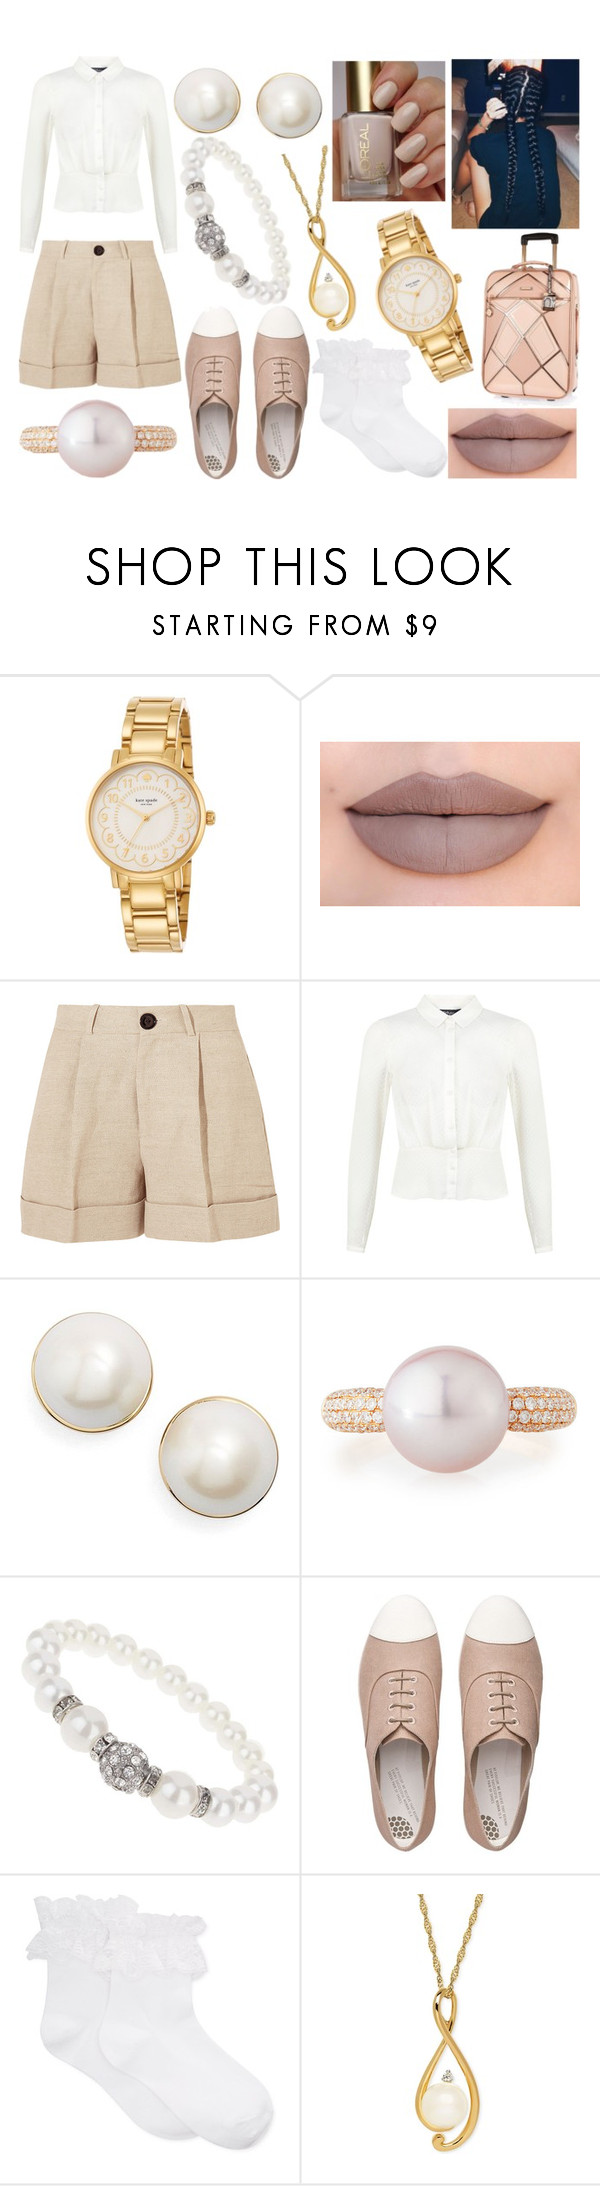 """""""Kendall"""" by apollosunshine23 ❤ liked on Polyvore featuring Kate Spade, Jeffree Star, Totême, Miss Selfridge, Belpearl, Dorothy Perkins, FitFlop, Hue and River Island"""